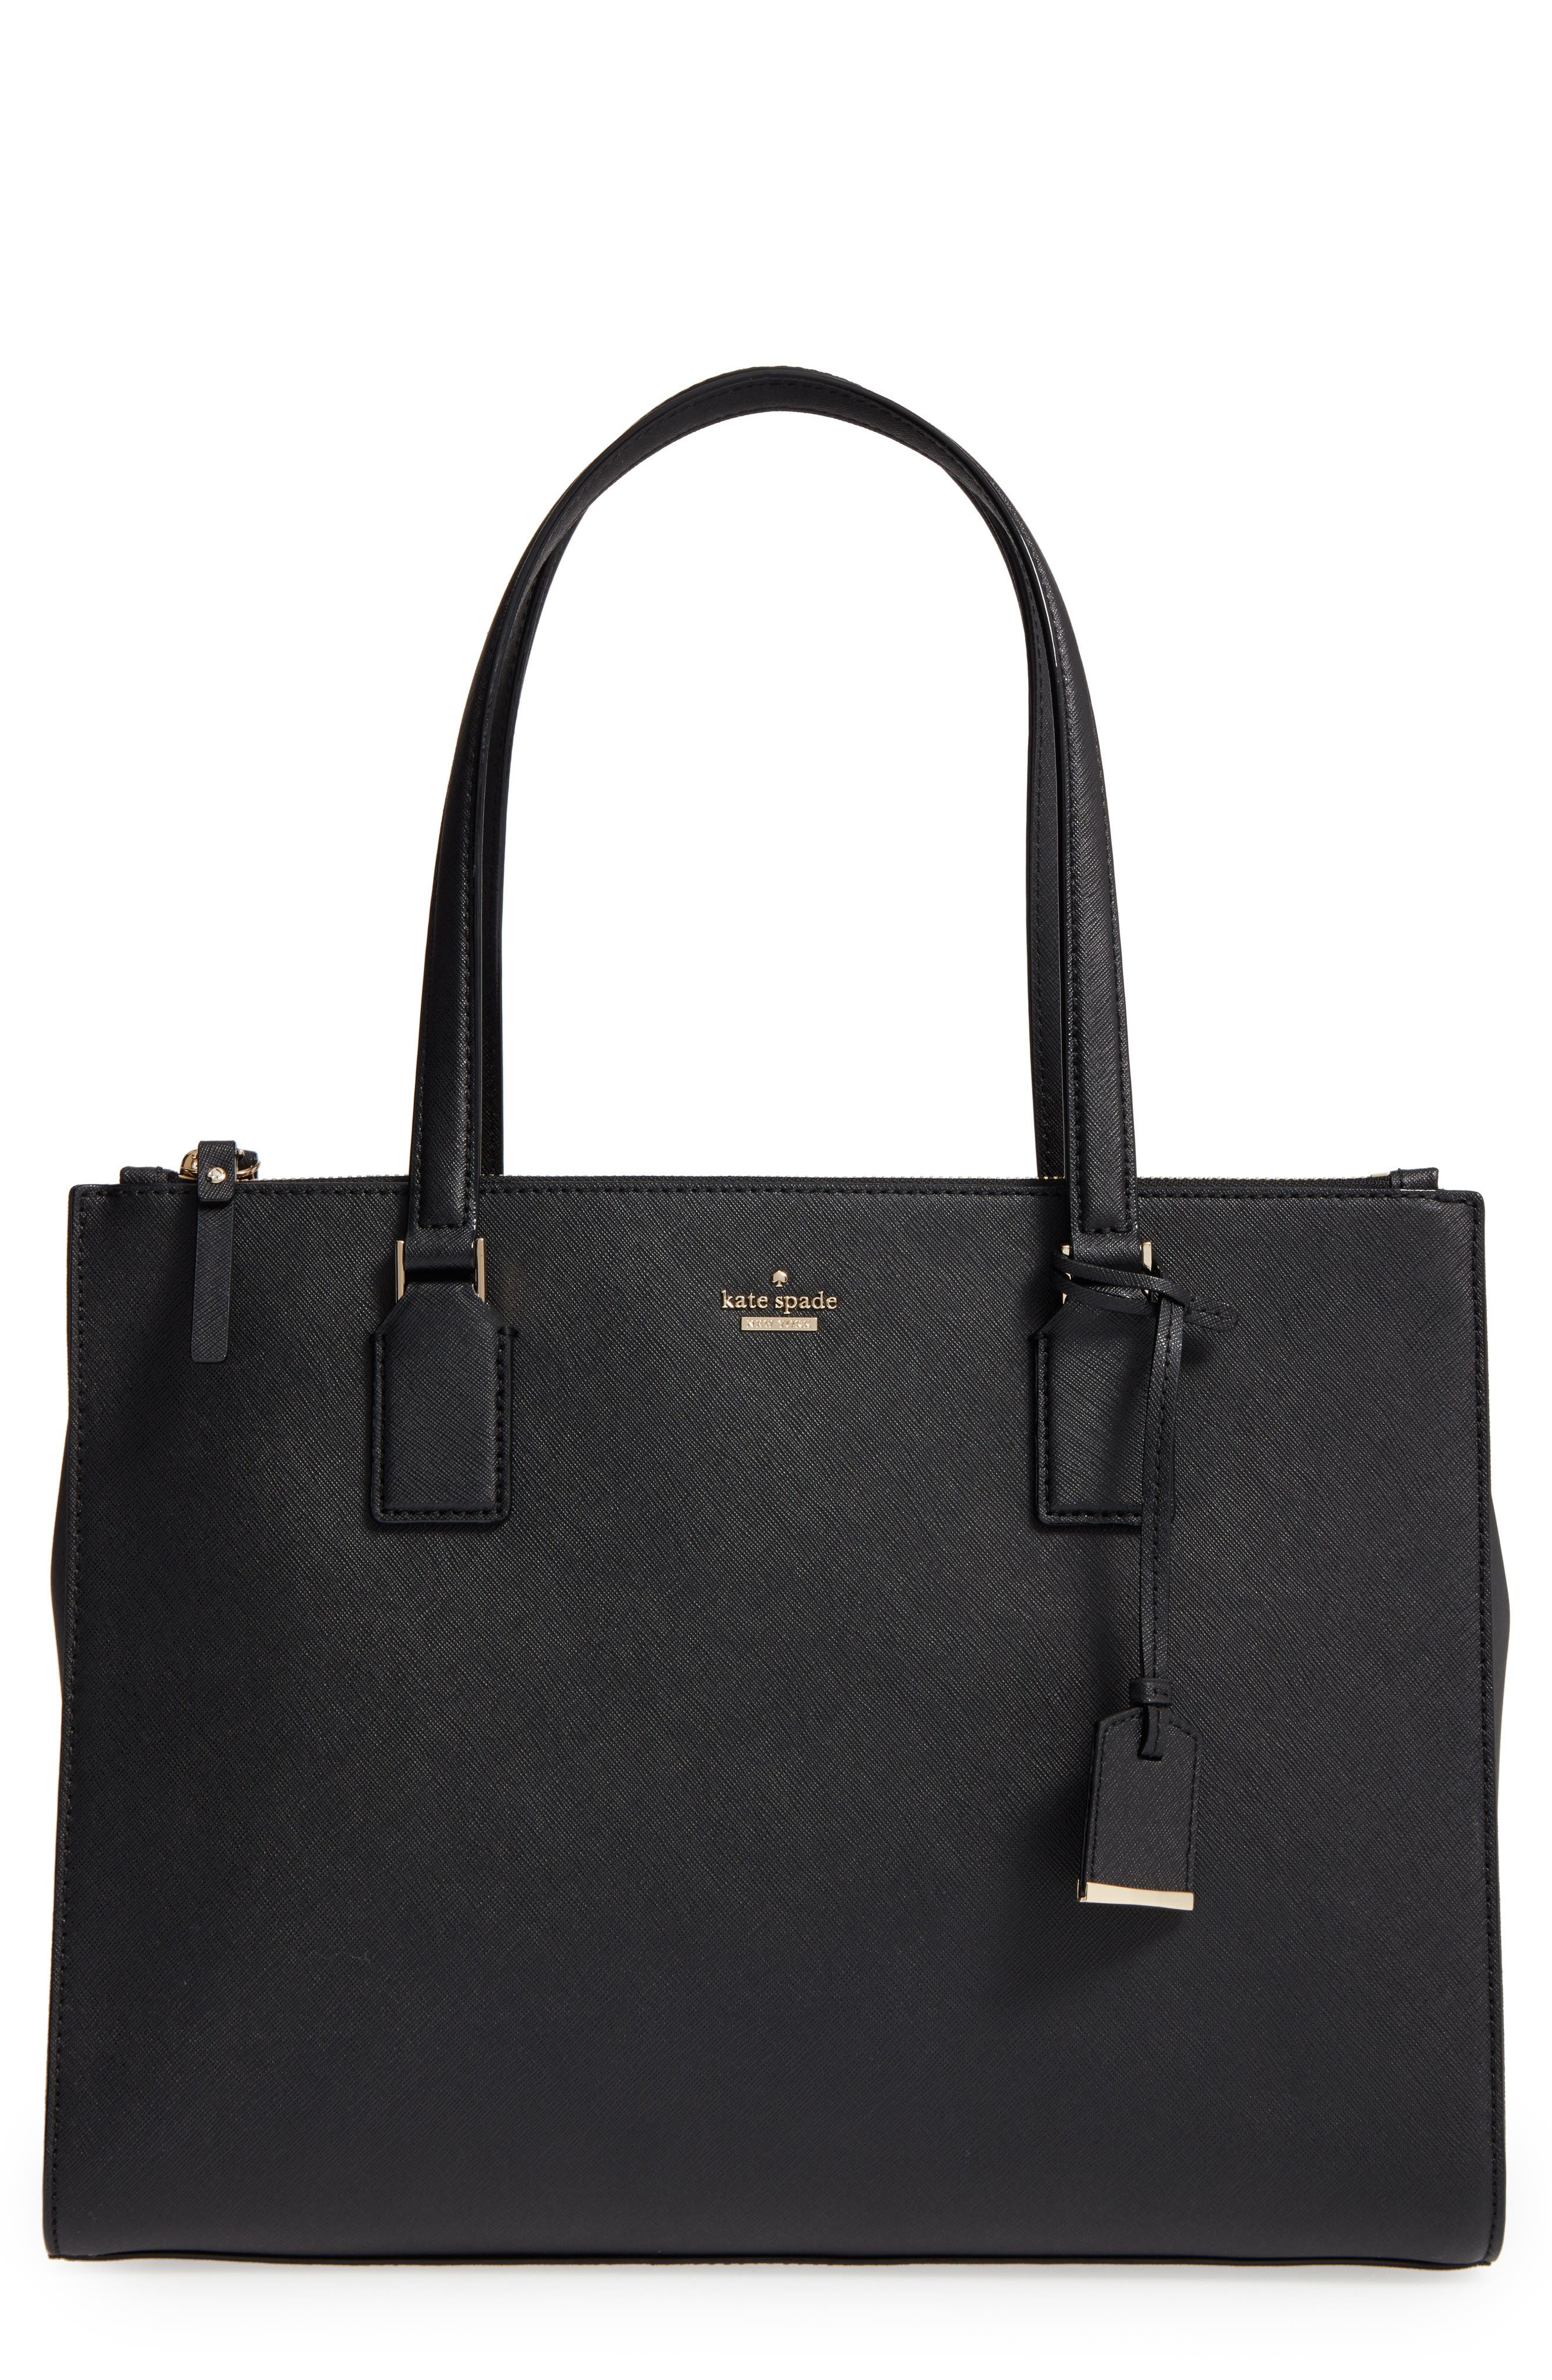 Main Image - kate spade new york cameron street - jensen leather tote